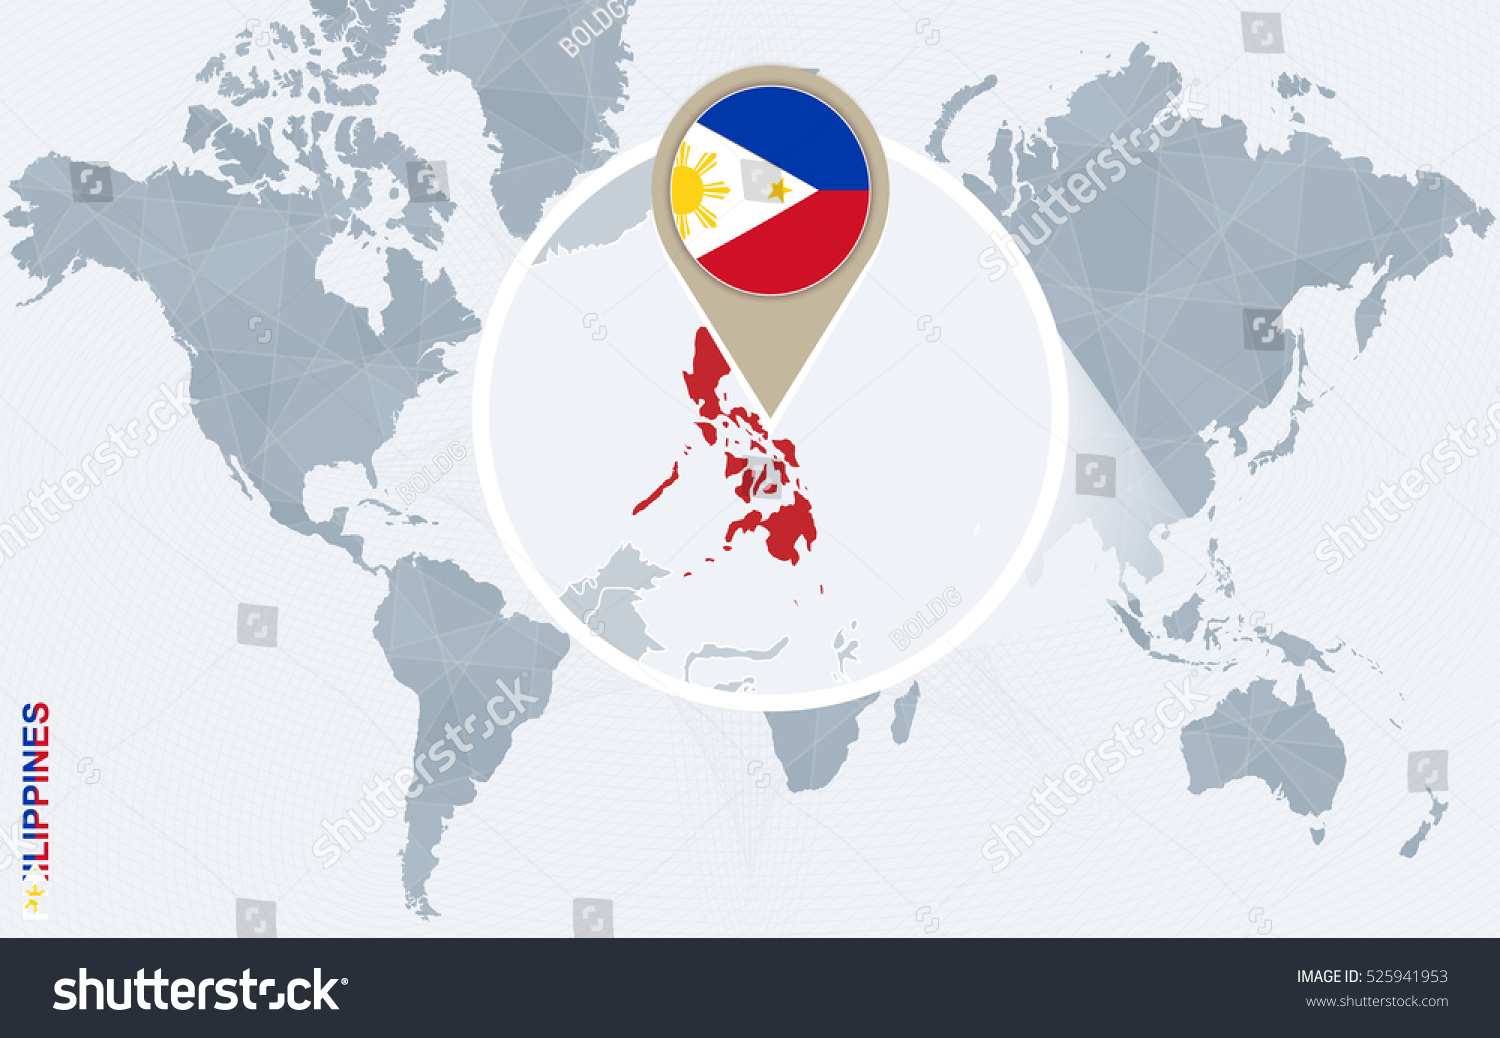 Abstract blue world map magnified philippines stock illustration abstract blue world map magnified philippines stock illustration 525941953 shutterstock gumiabroncs Gallery